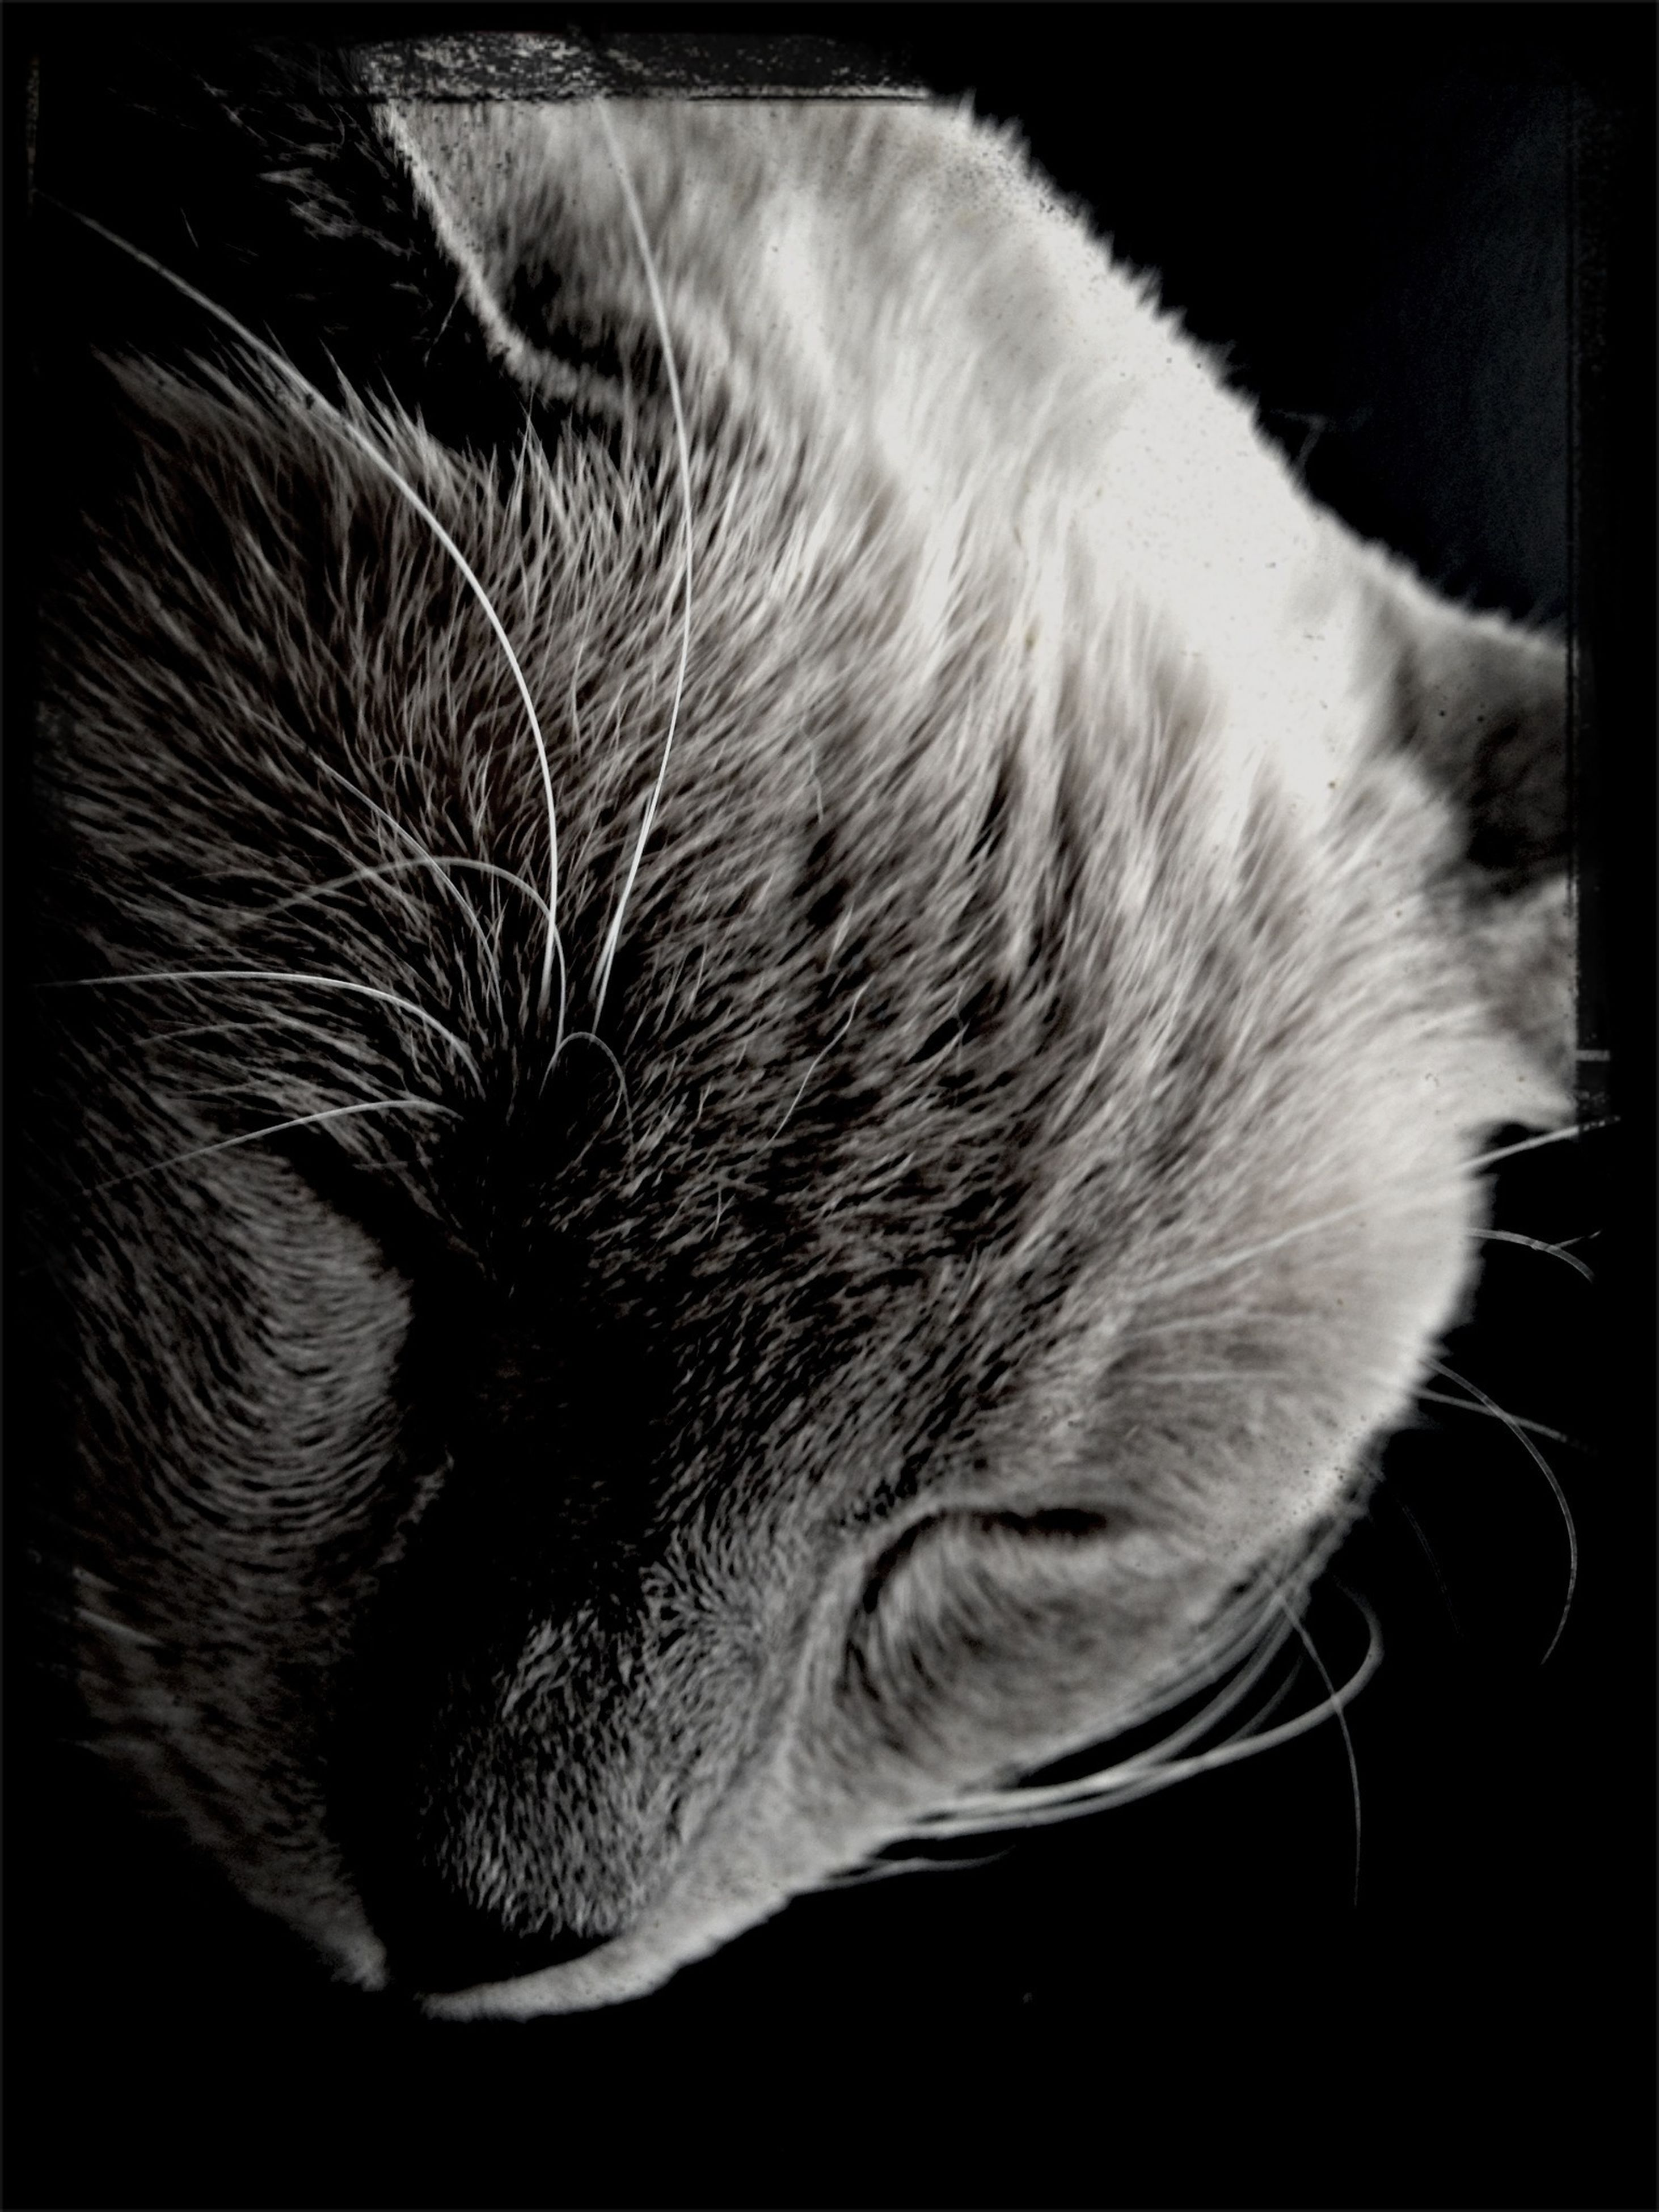 pets, domestic animals, indoors, one animal, animal themes, mammal, domestic cat, cat, close-up, relaxation, sleeping, feline, whisker, animal head, eyes closed, resting, lying down, transfer print, auto post production filter, animal body part